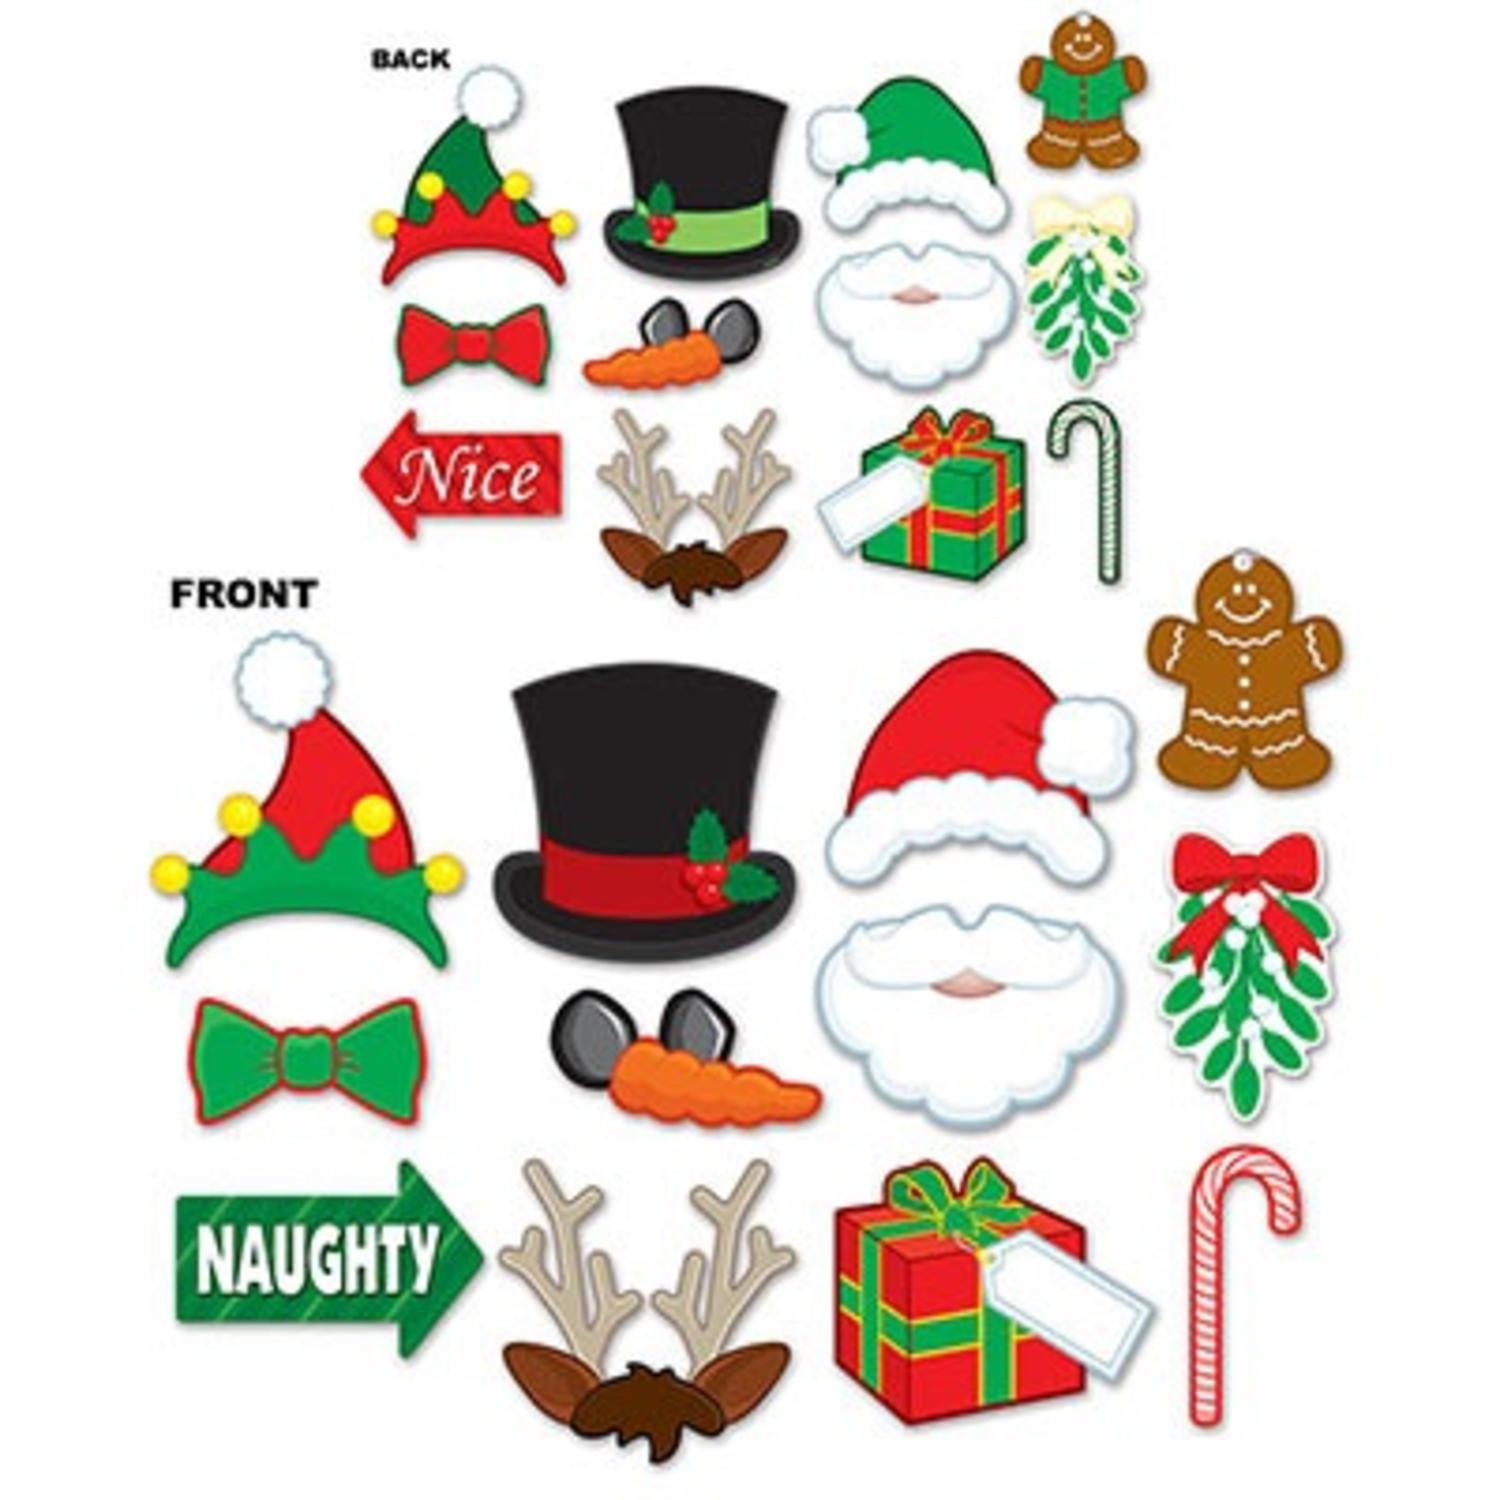 Club Pack of 144 Winter Wonderland Christmas Photo Fun Sign Party Decorations 9.75""